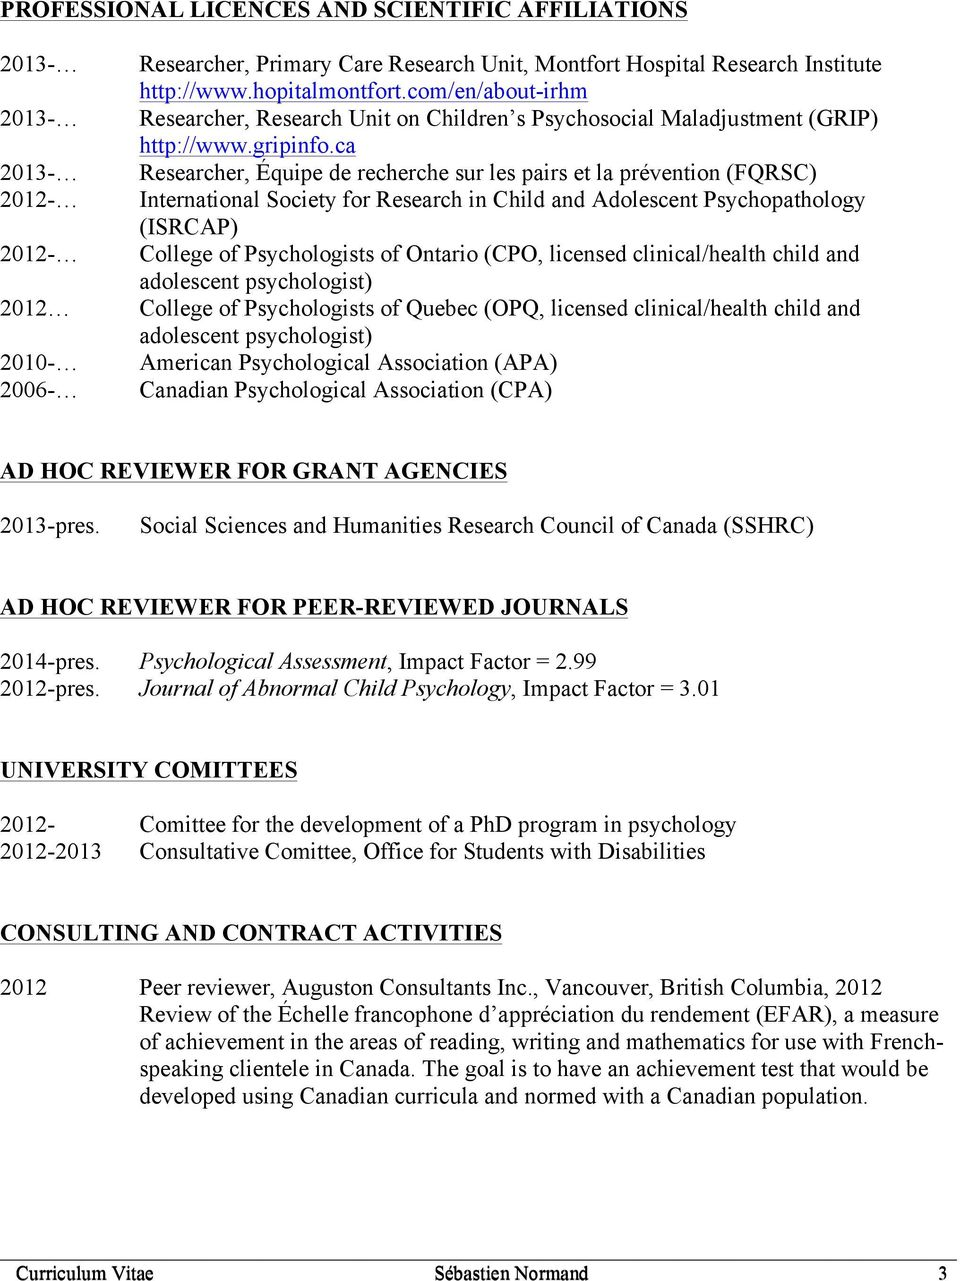 ca 2013- Researcher, Équipe de recherche sur les pairs et la prévention (FQRSC) 2012- International Society for Research in Child and Adolescent Psychopathology (ISRCAP) 2012- College of